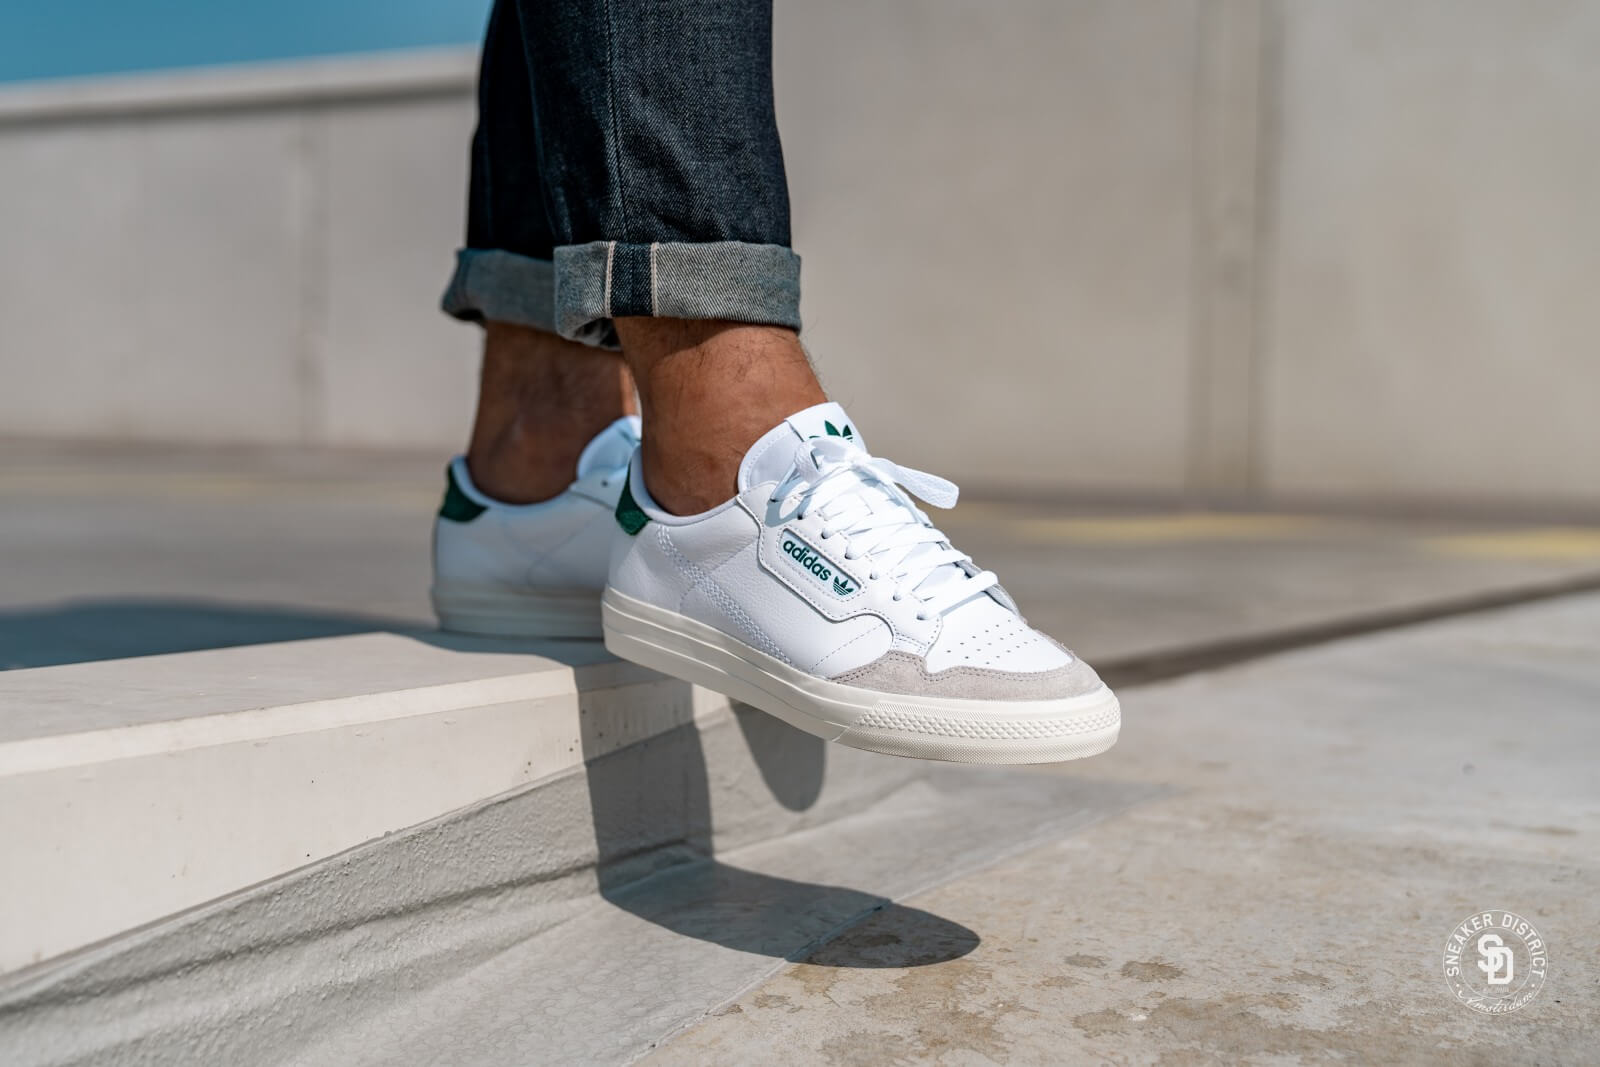 Adidas Continental Vulc Cloud WhiteCollegiate Green EF3534